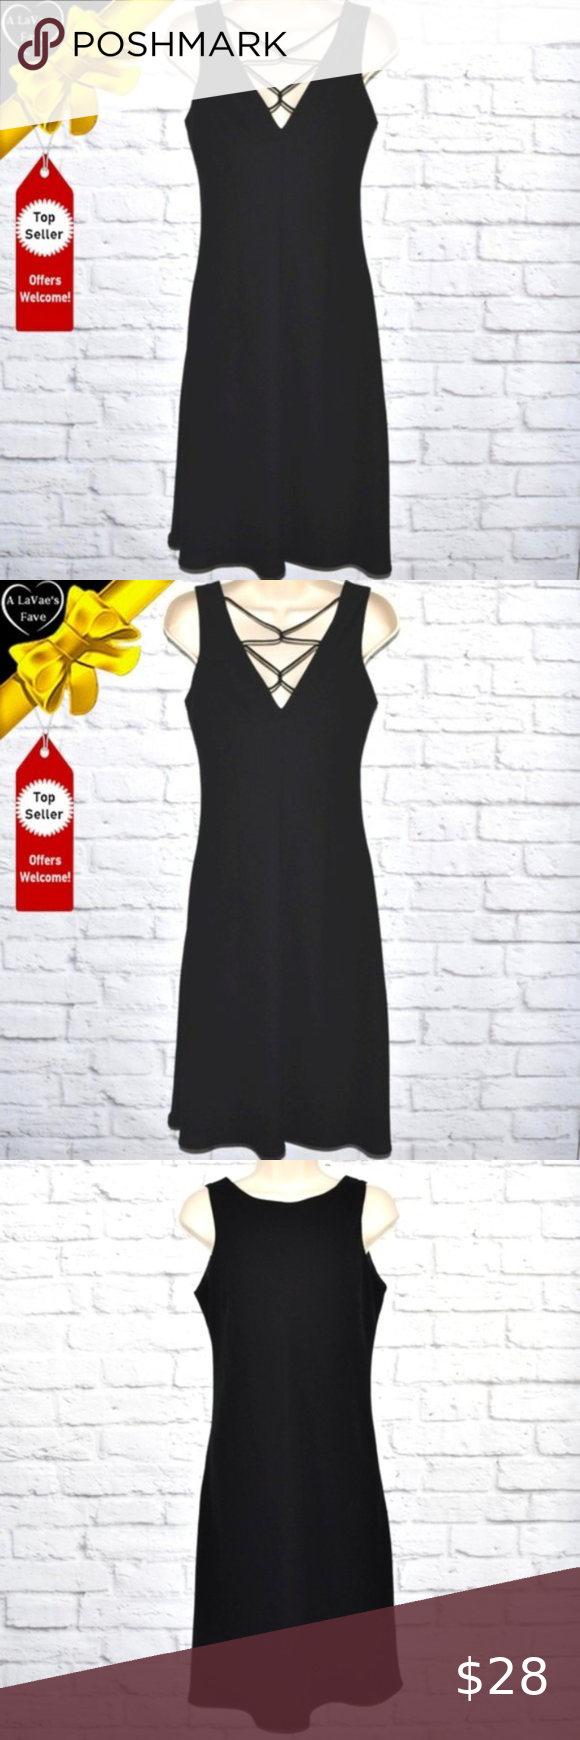 Evan Picone Lace Up Back Little Black Dress In 2020 Little Black Dress Black Dress Dresses